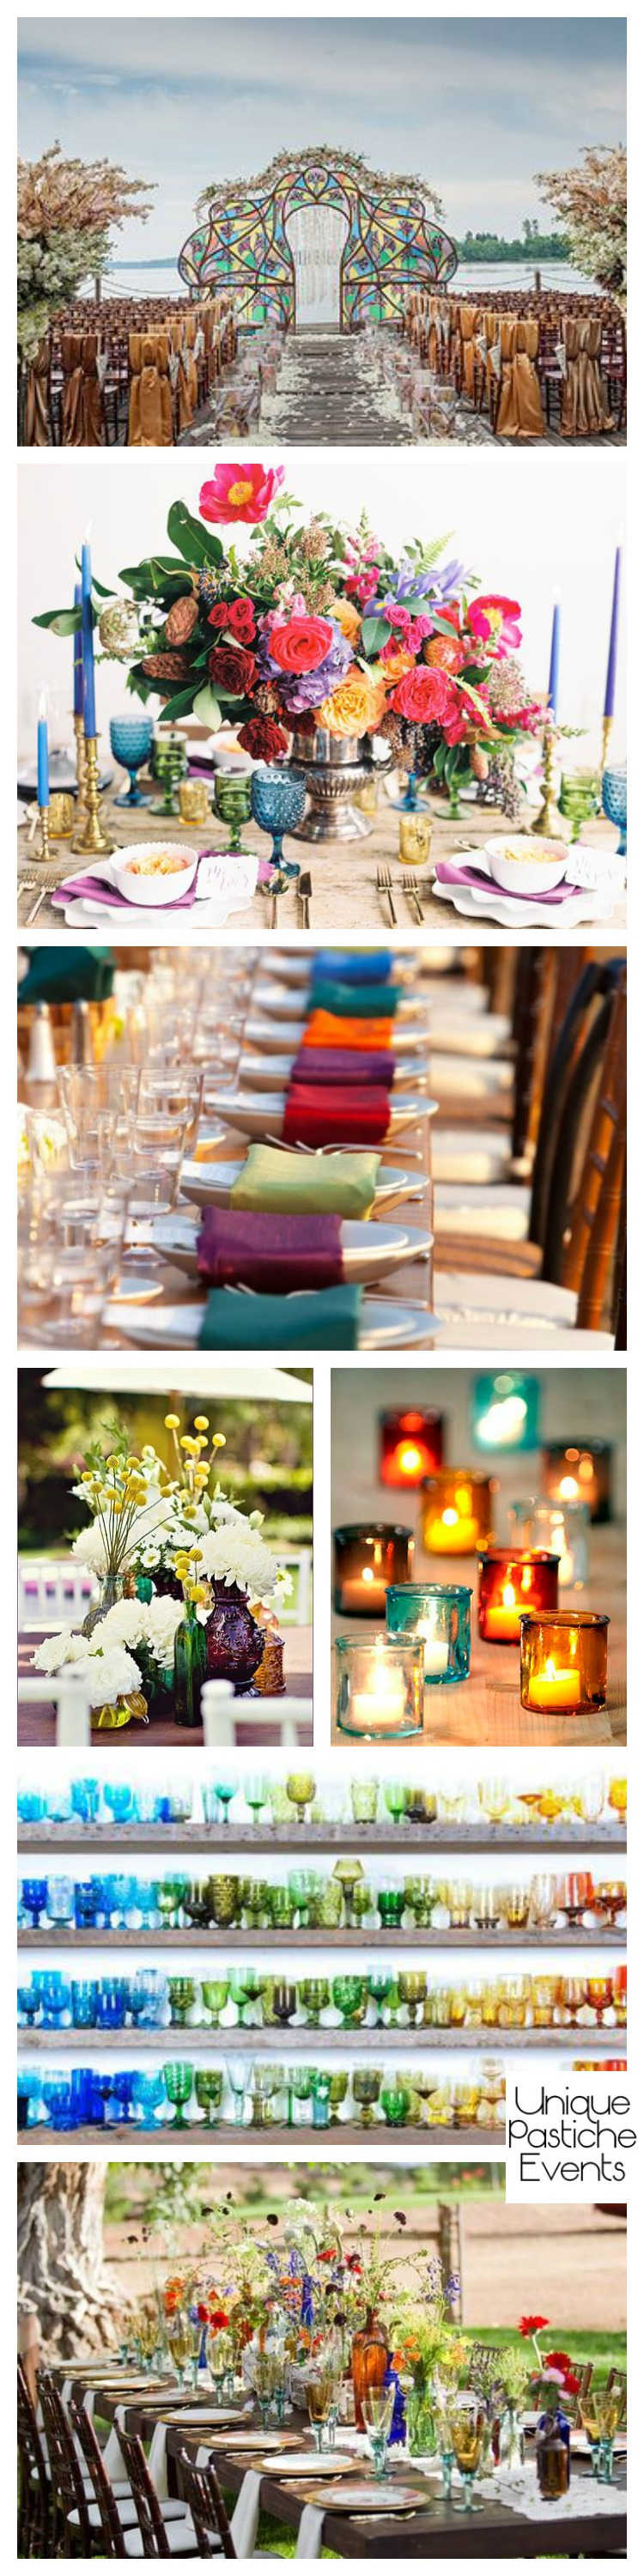 Bold Bohemian Wedding in Jewel Tones Save all the ideas: https://uniquepasticheevents.com/2017/01/11/bold-bohemian-wedding-in-jewel-tones/